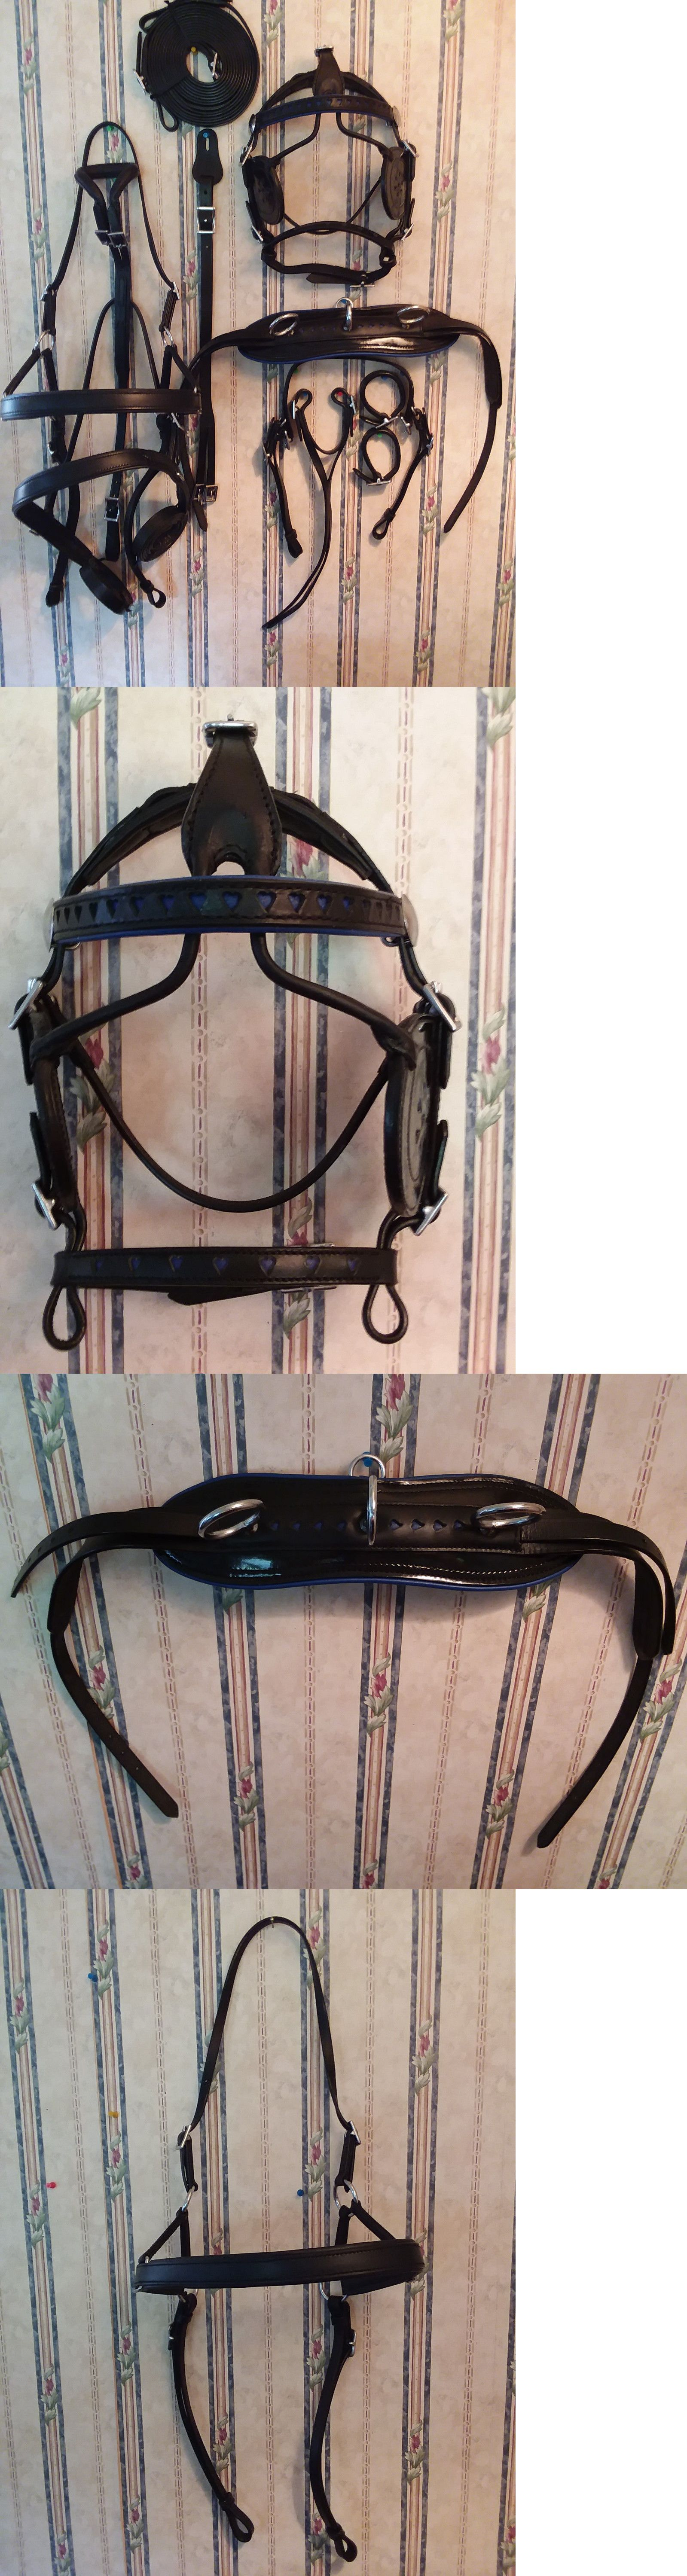 hight resolution of driving equipment 85178 black leather shetland pony mini miniature driving horse harness w blue hearts buy it now only 149 95 on ebay driving